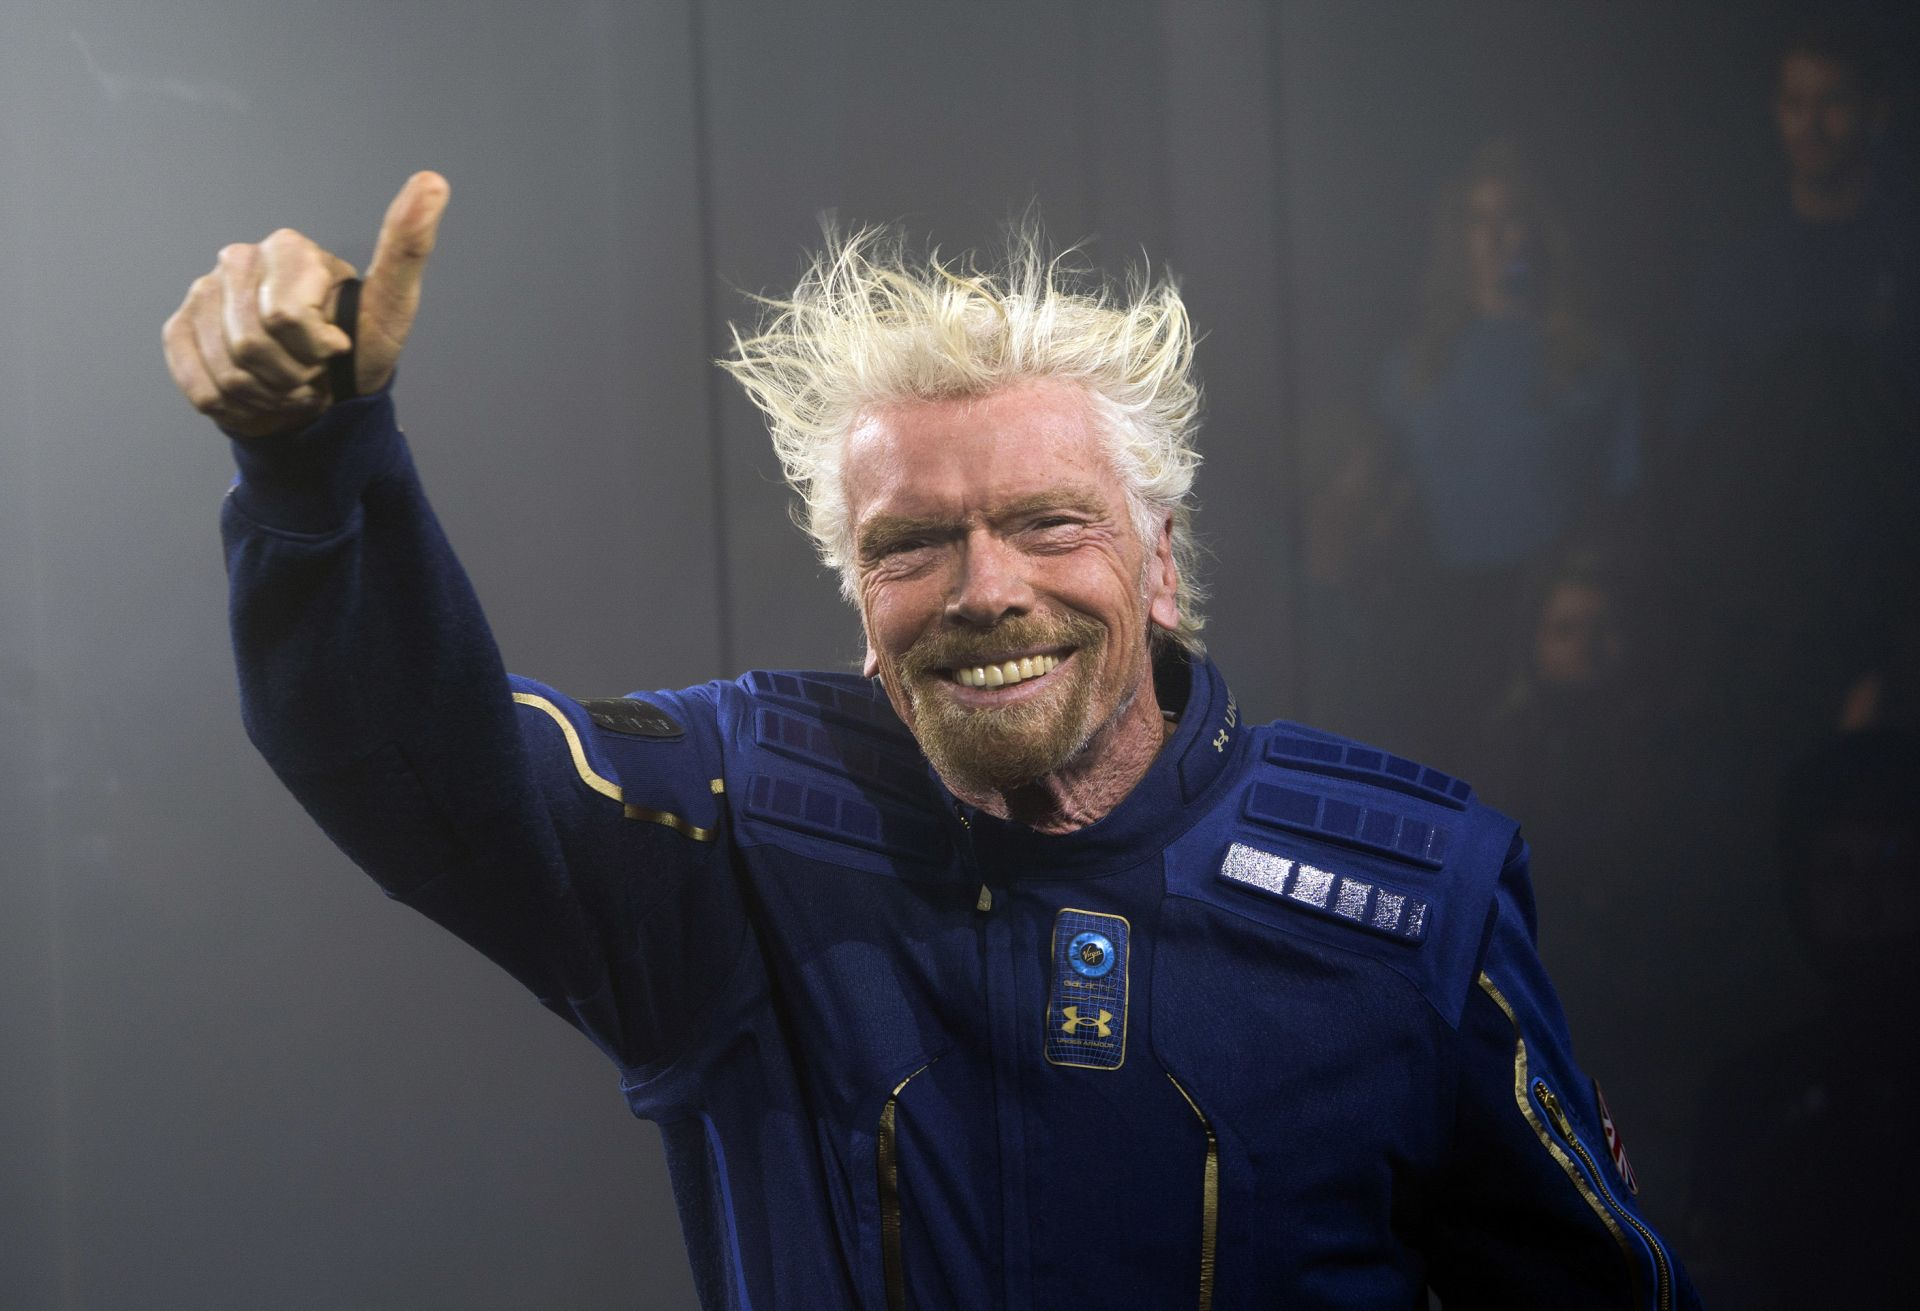 Virgin Galactic Founder Sir Richard Branson demonstrates a spacewear system, designed for Virgin Galactic astronauts, at an event October 16, 2019 in Yonkers, New York. - At the event Virgin Galactic and Under Armour unveiled the worldís first exclusive spacewear system for private astronauts. (Photo by Don Emmert / AFP)